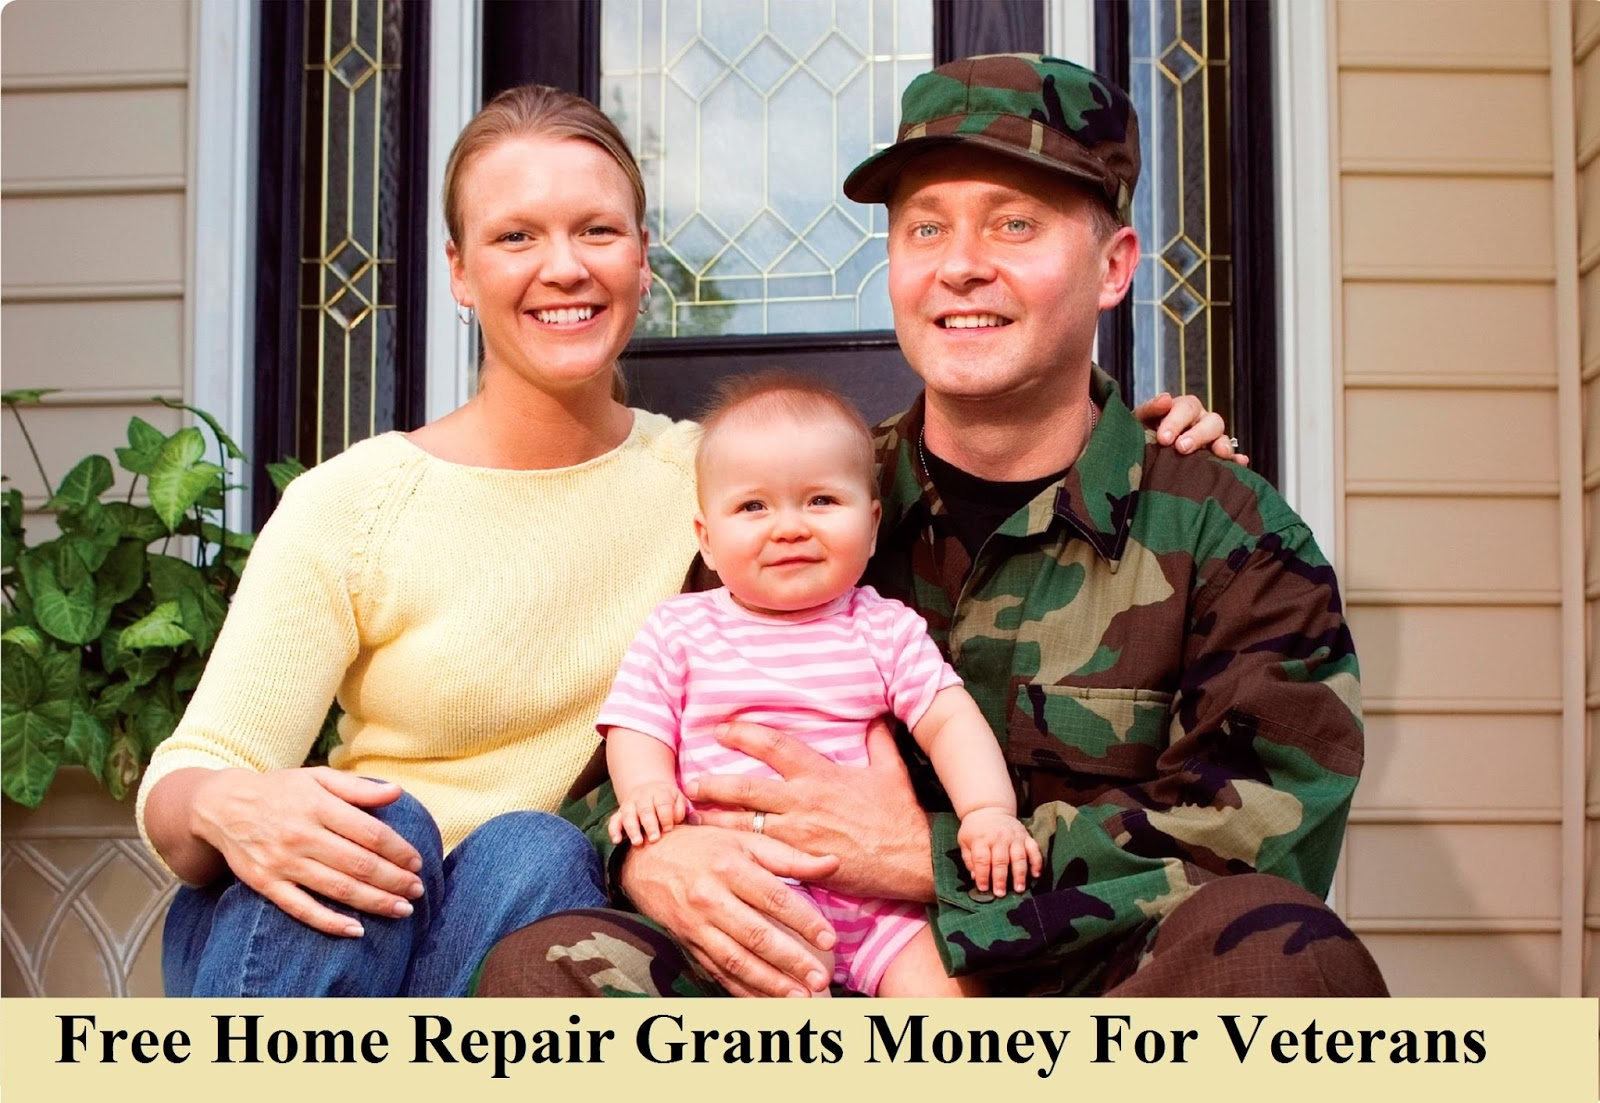 Free Home Repair Grants For Veterans-Appply For Home